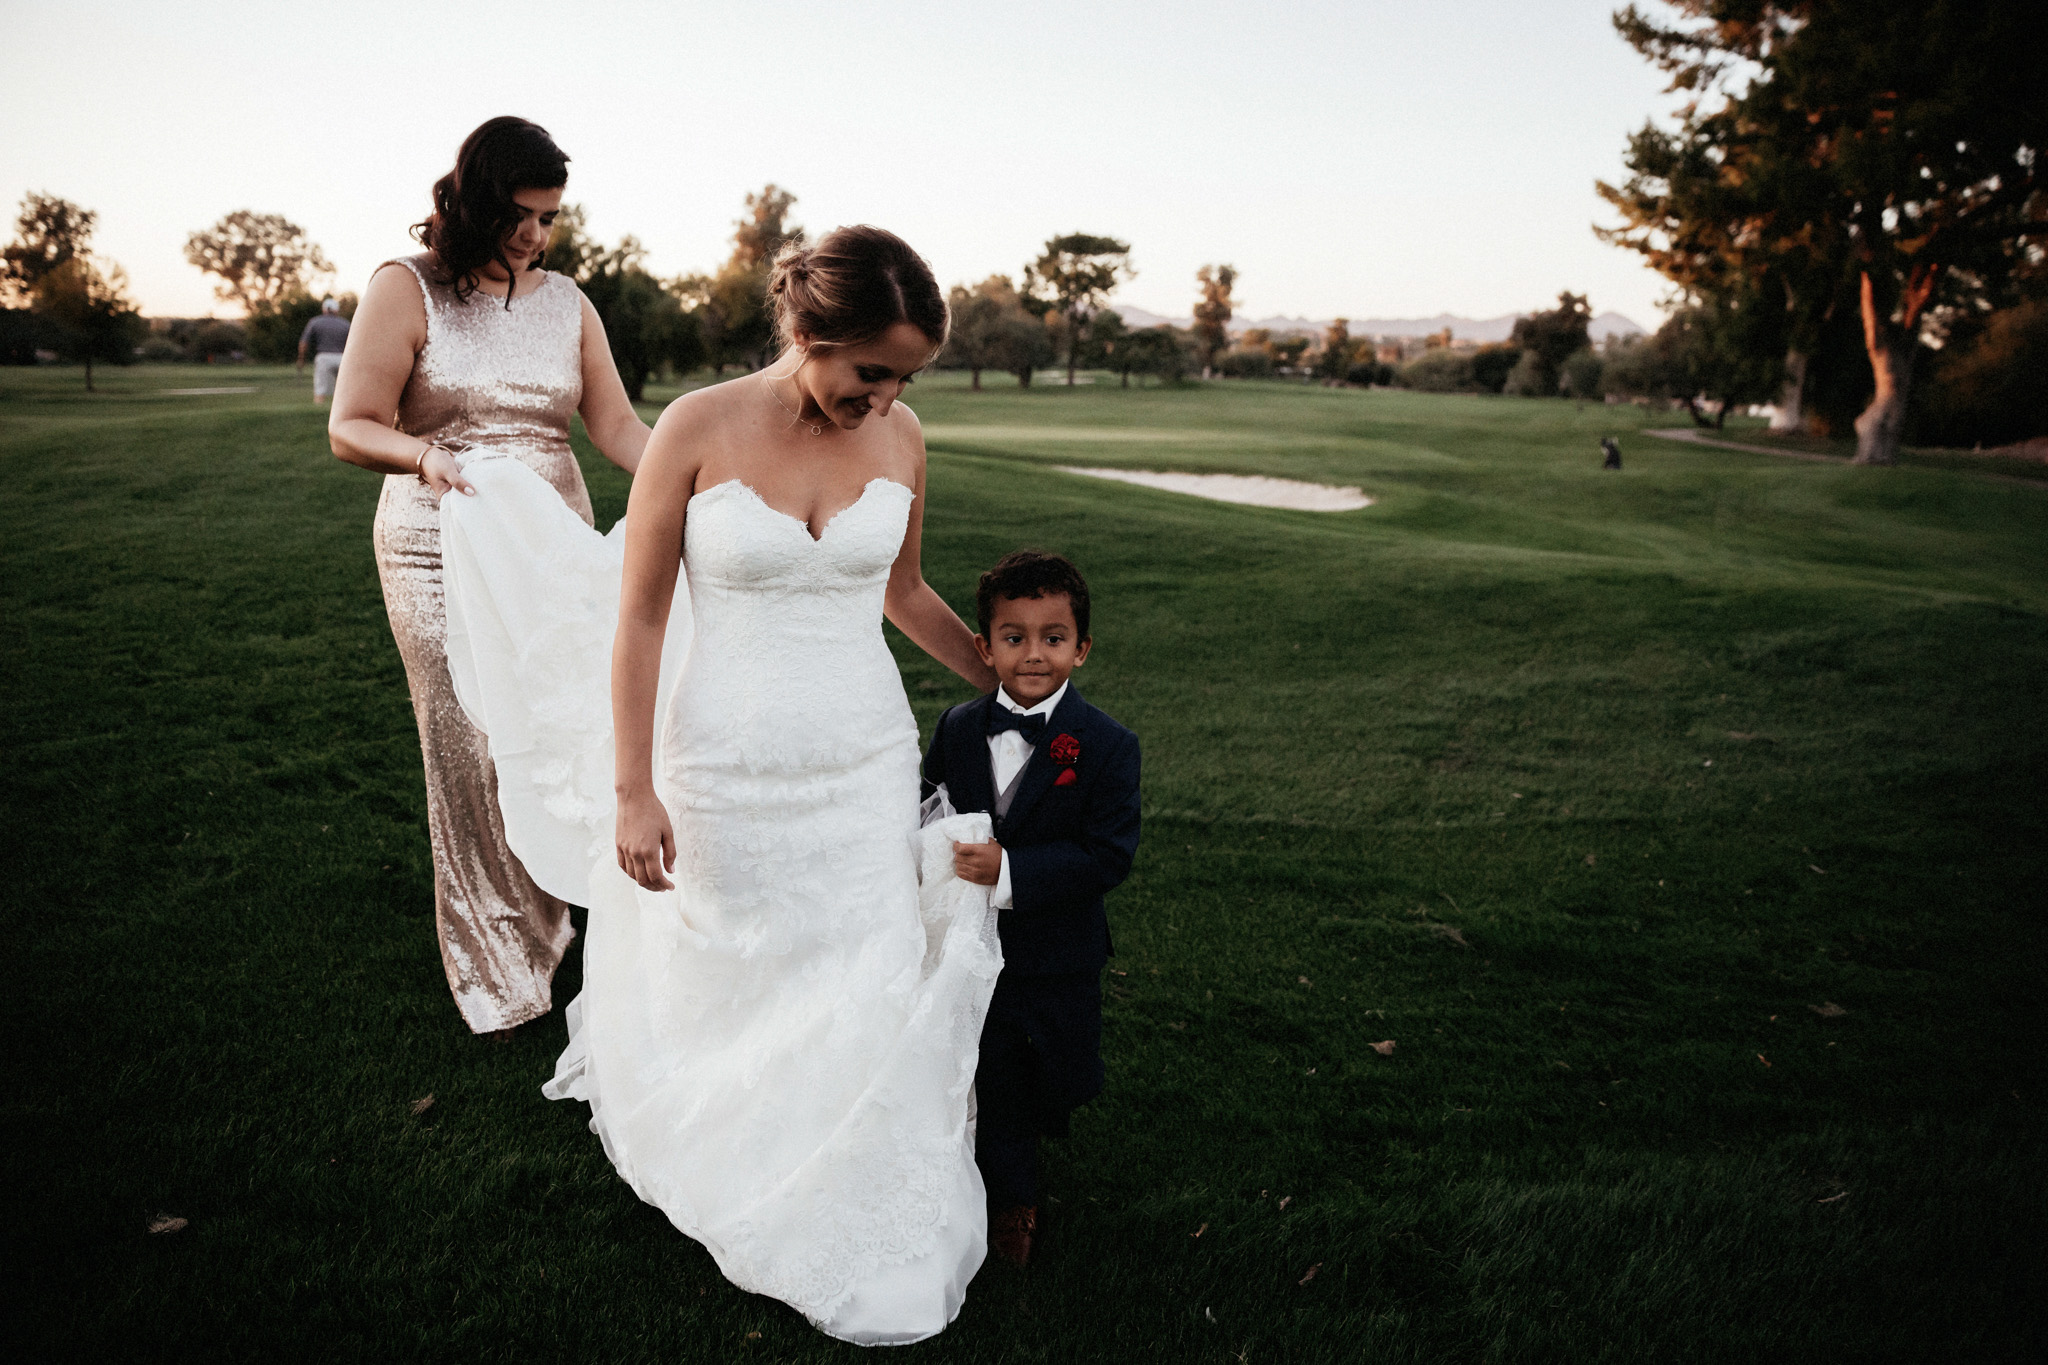 Tucson Wedding Photographer (70 of 117).jpg